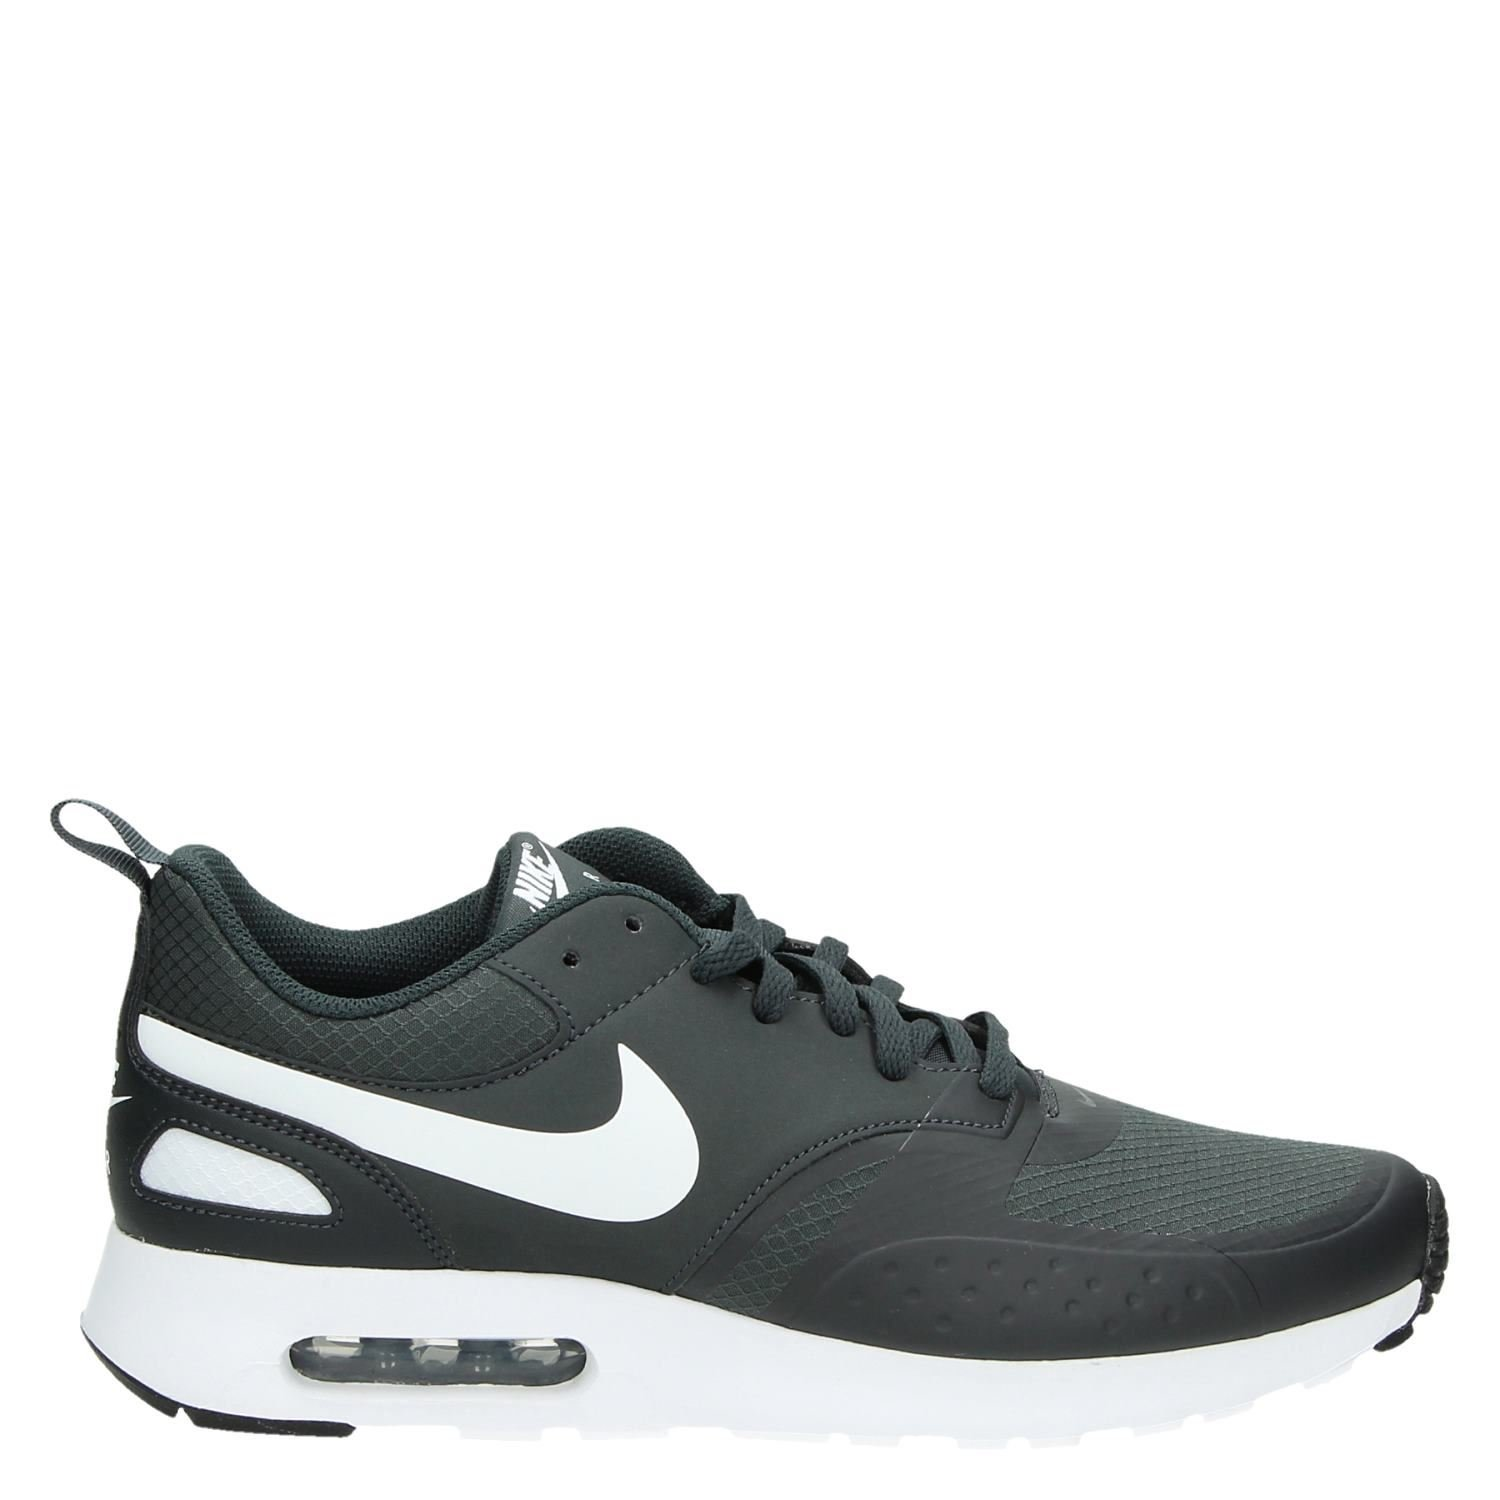 Chaussures Nike Air Max Vision Gris Taille 35 Hommes YvfGVroSi